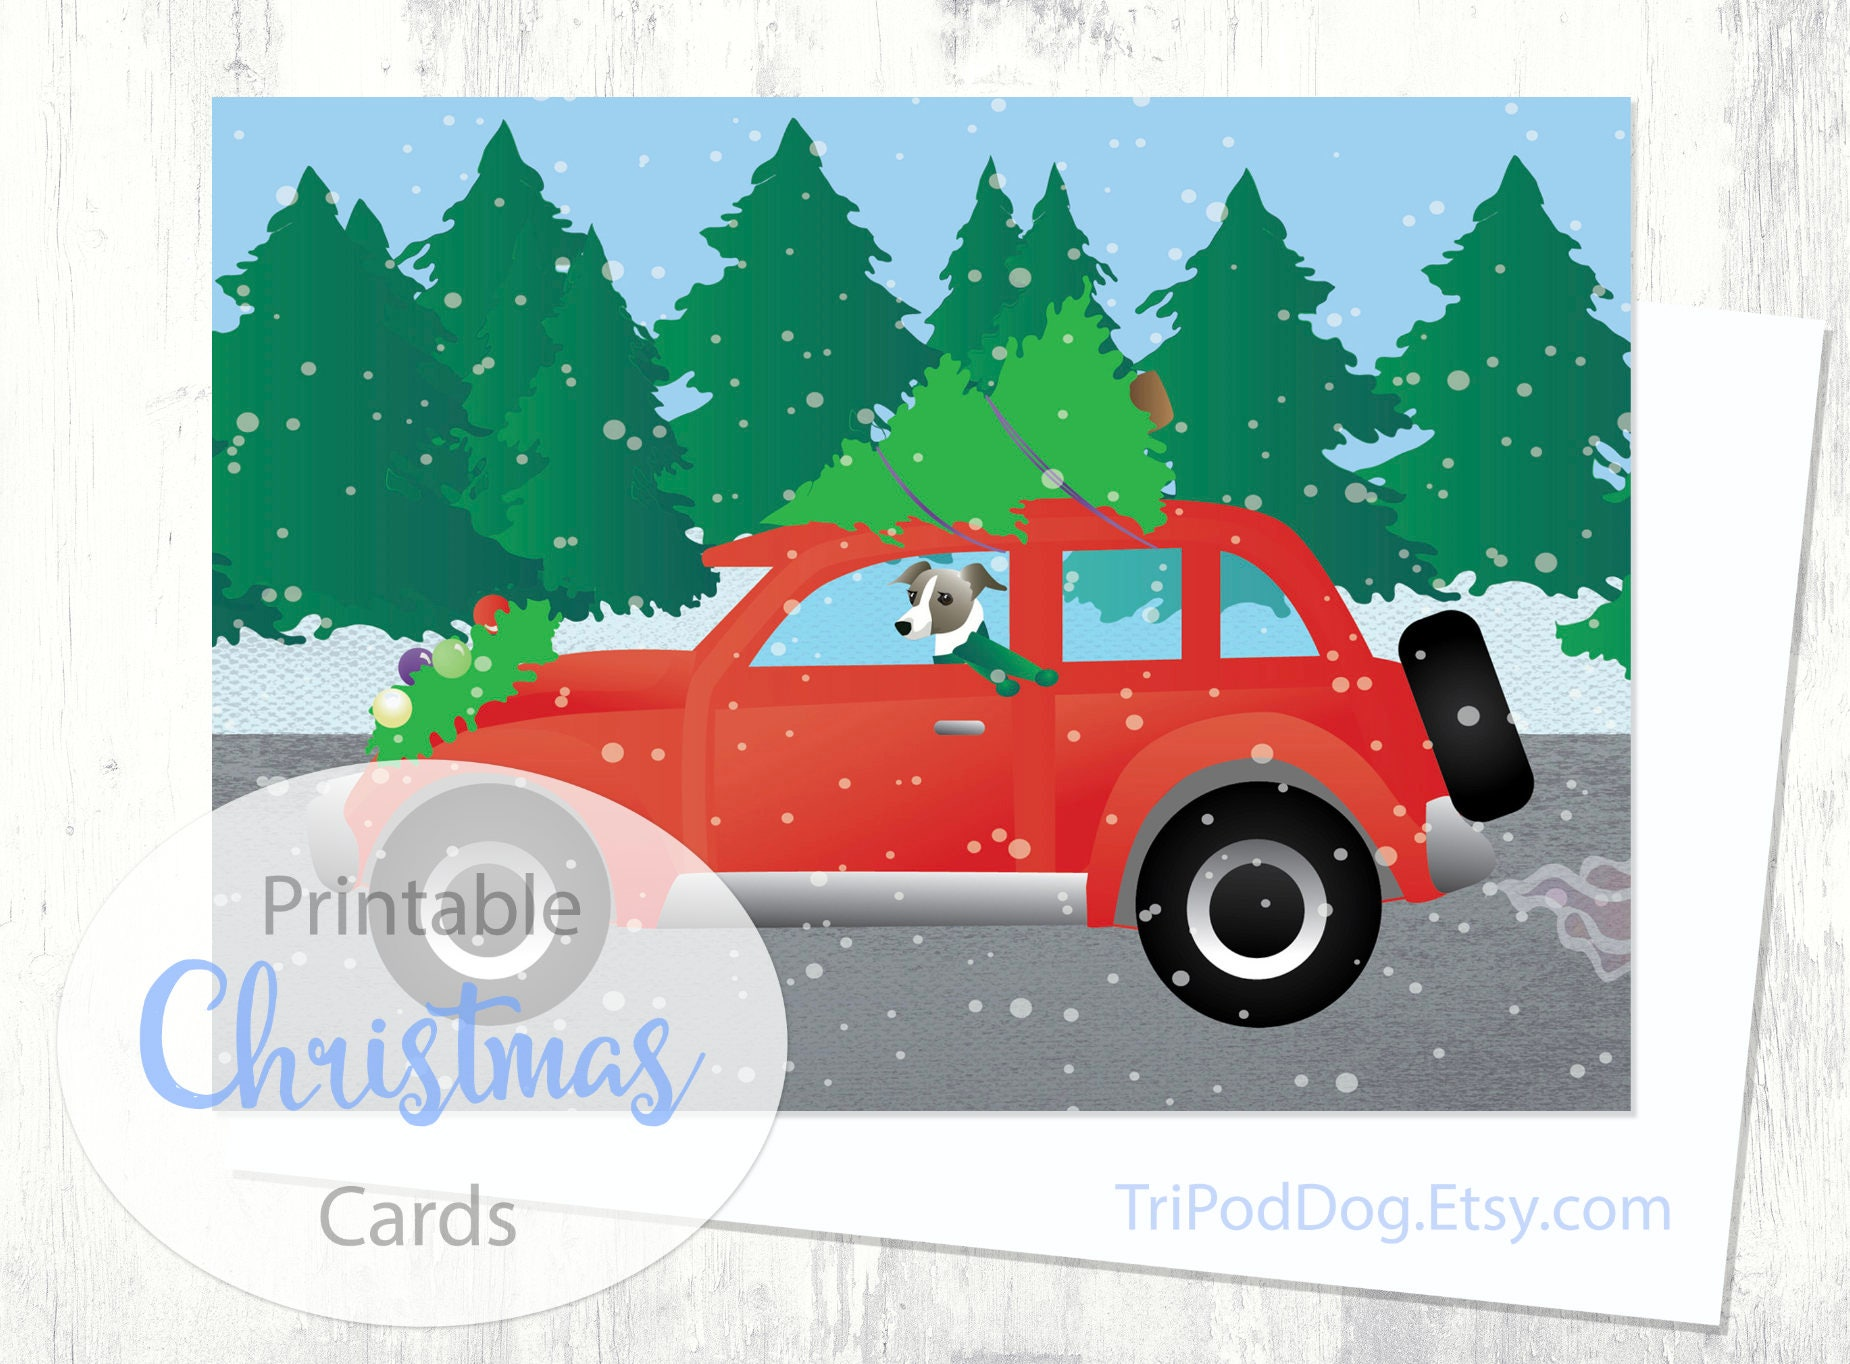 Italian Greyhound Dog Christmas Cards From The Breed Etsy